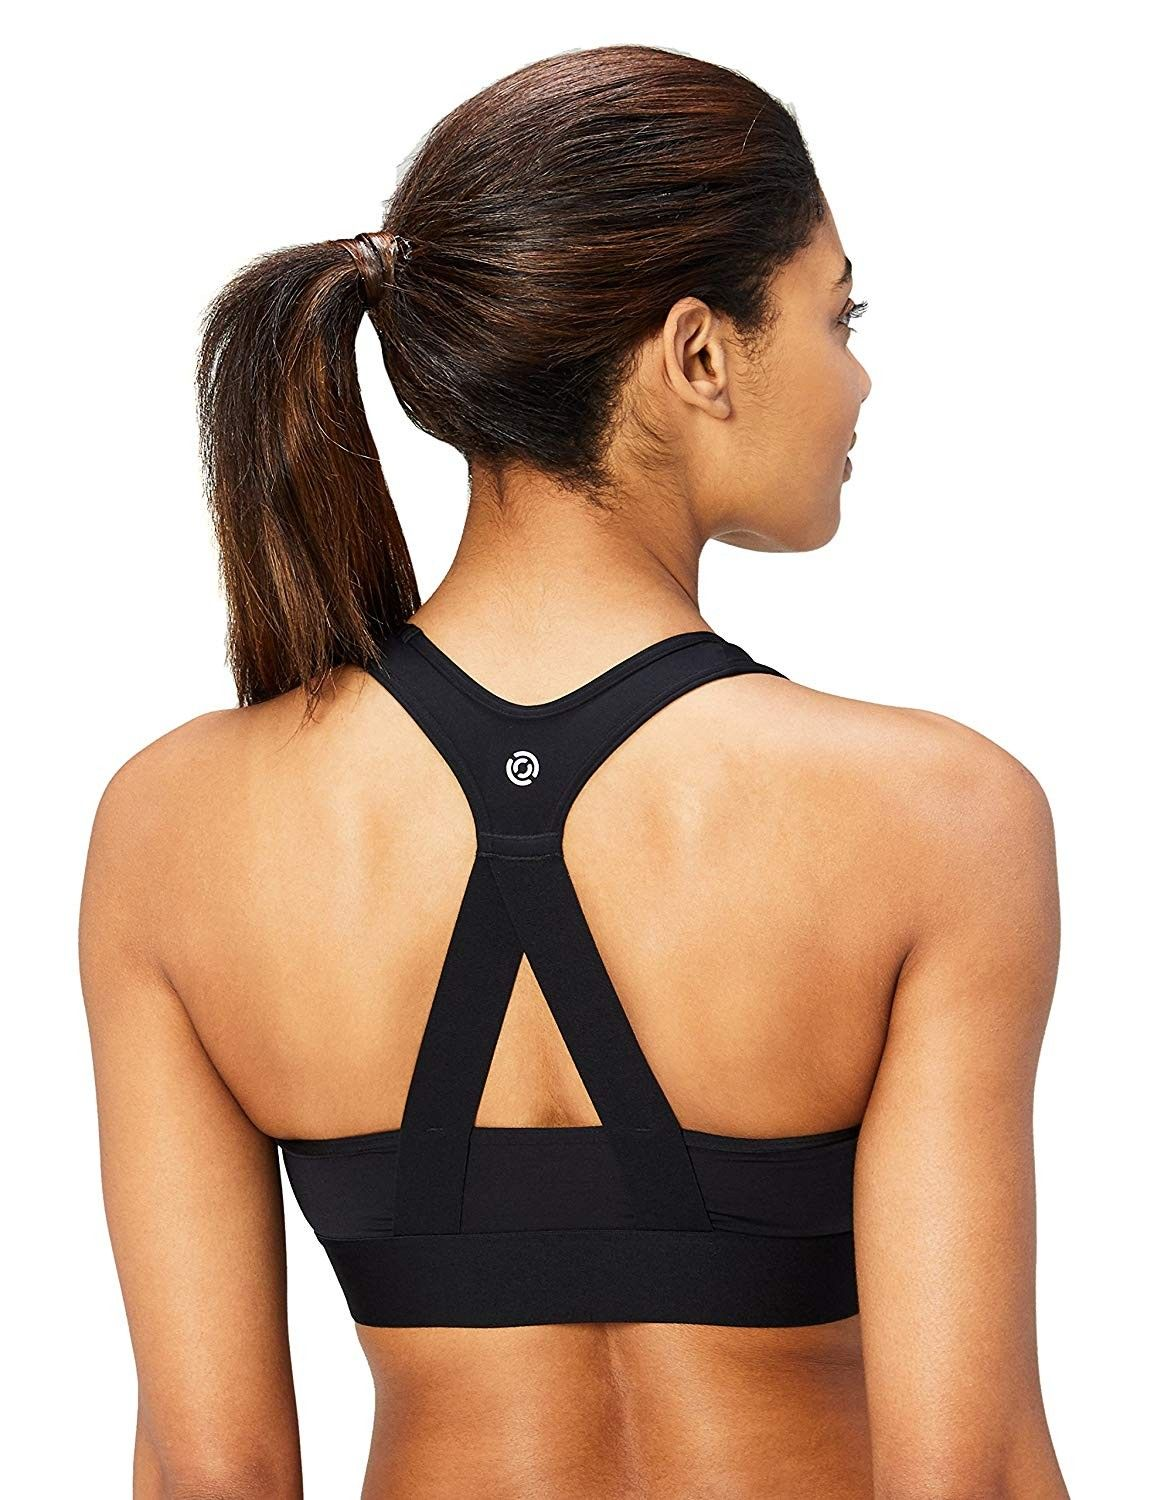 Women's (XS-3X) Cross Back Sports Bra with Removable Cups - Black - C818CLQ2H45 - Sports & Fitness C...